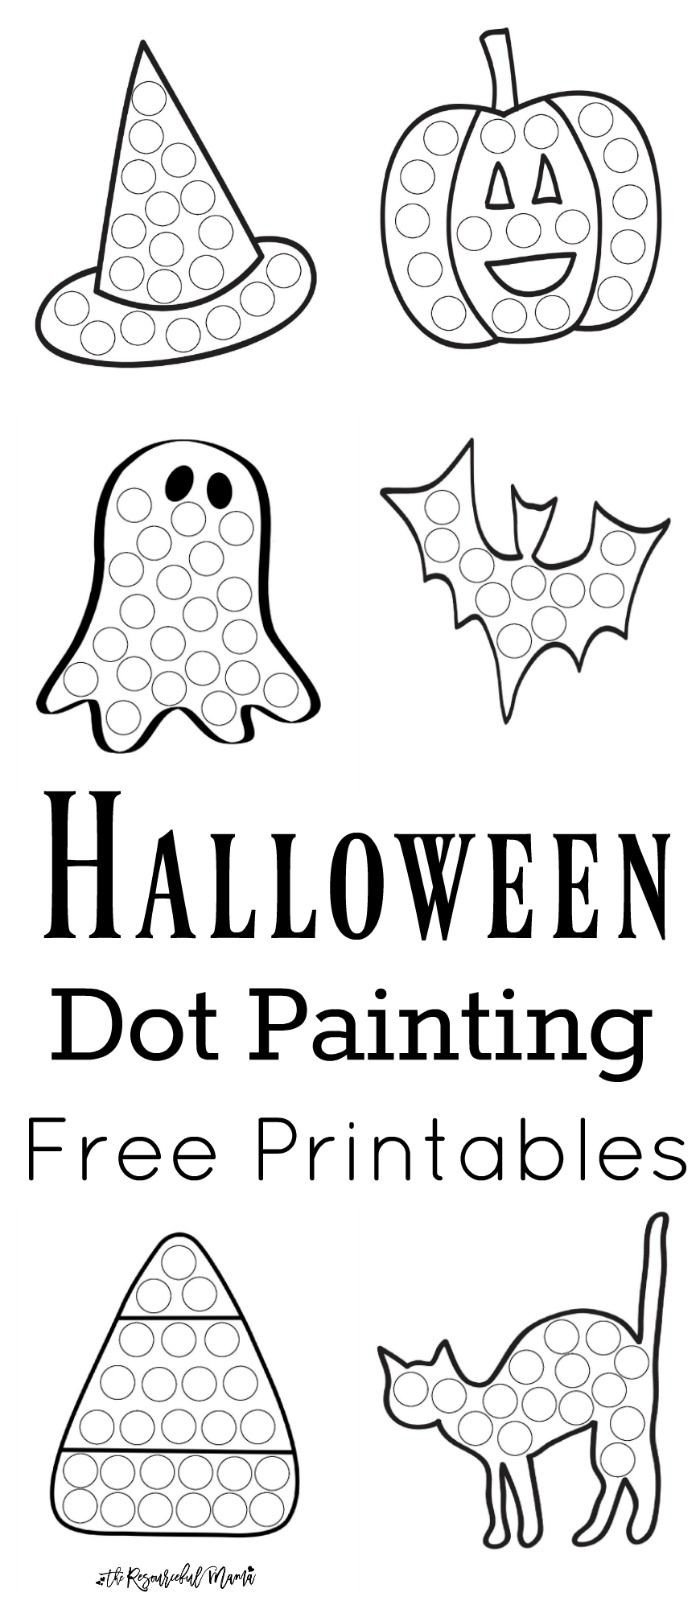 Dot to Dot Art Printables Halloween Dot Painting Free Printables